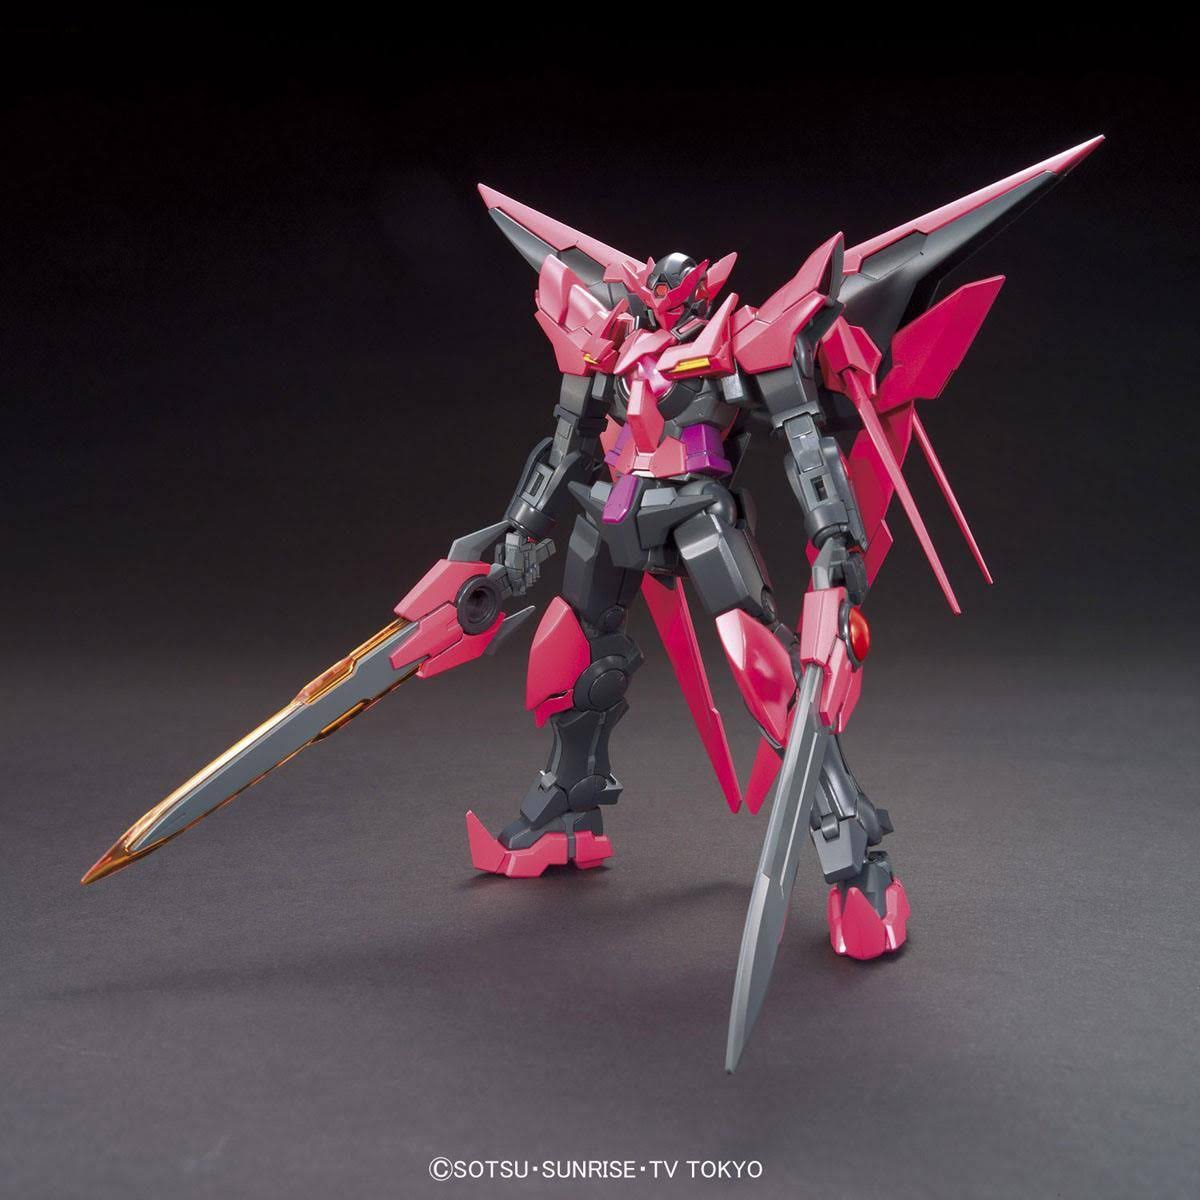 Bandai HGBF Gundam Exia Dark Matter HG Model Kit - 1/144 Scale